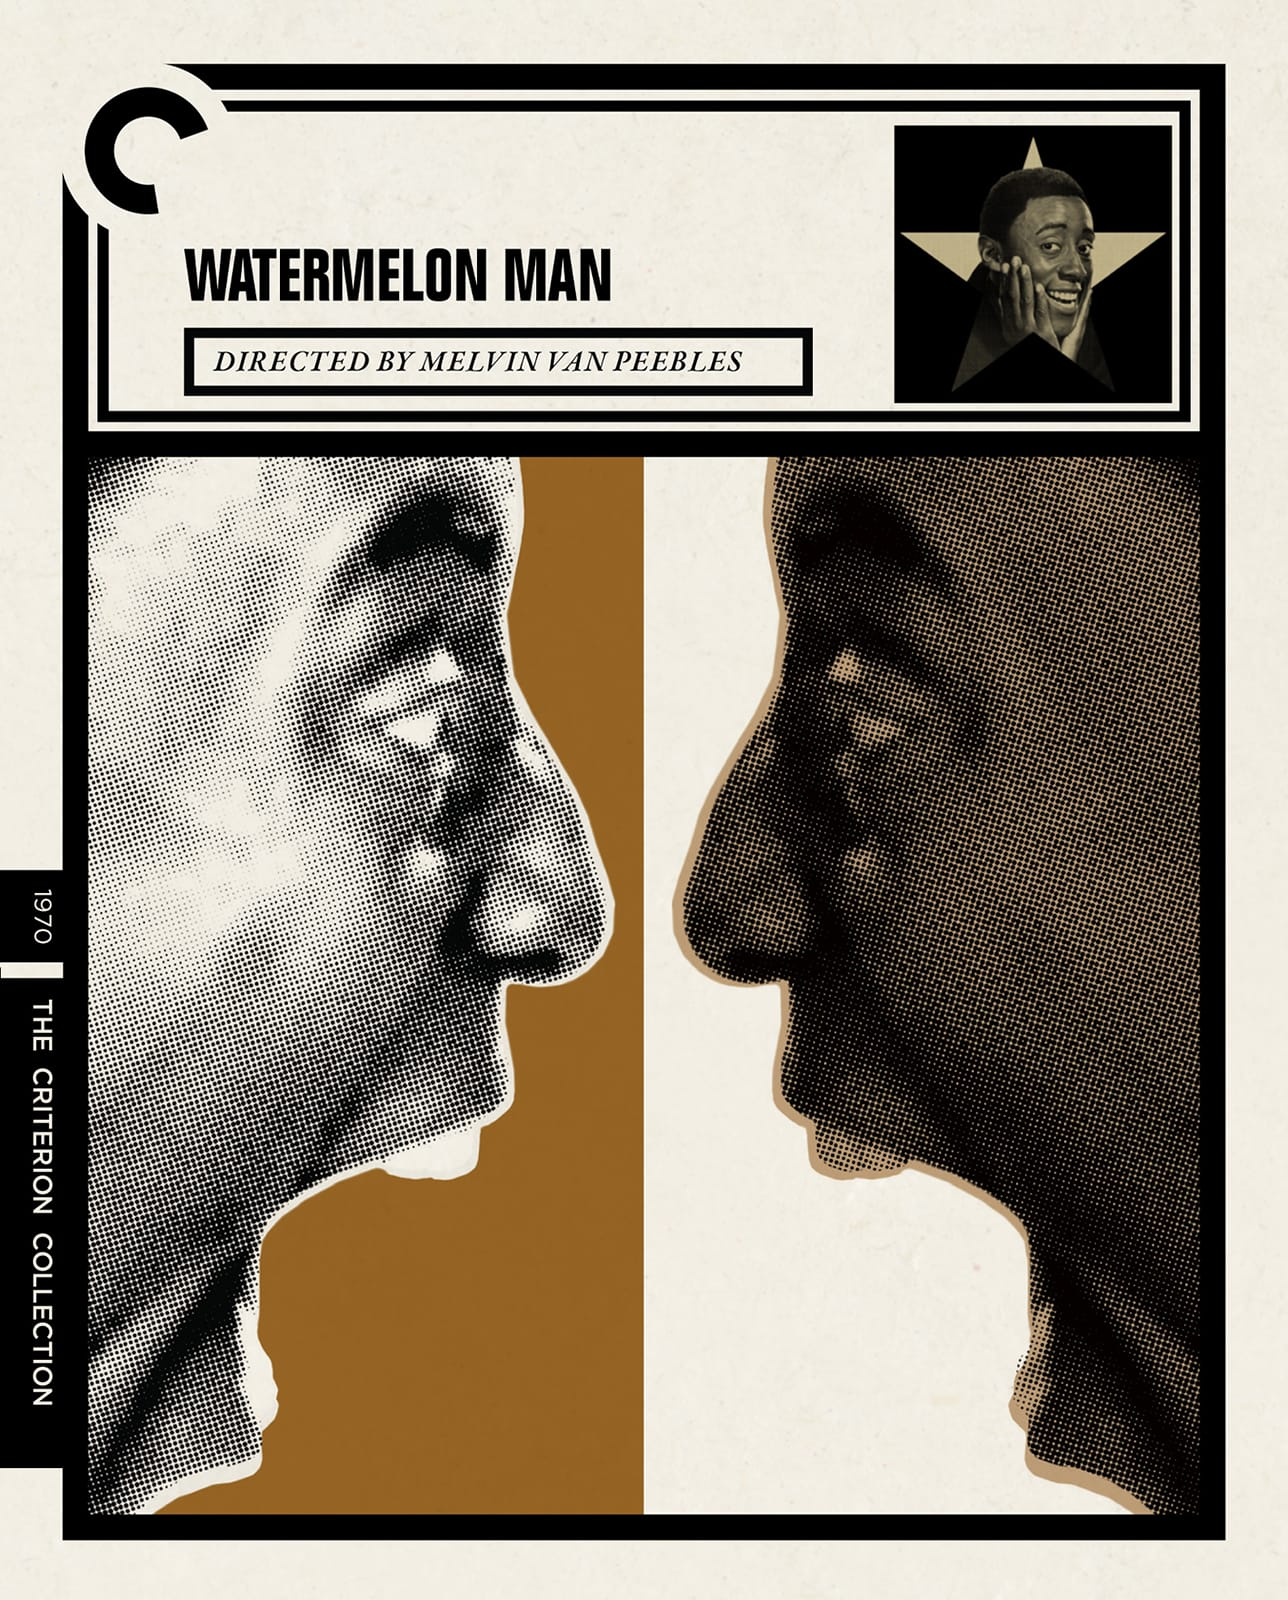 Watermelon Man (1970) | The Criterion Collection